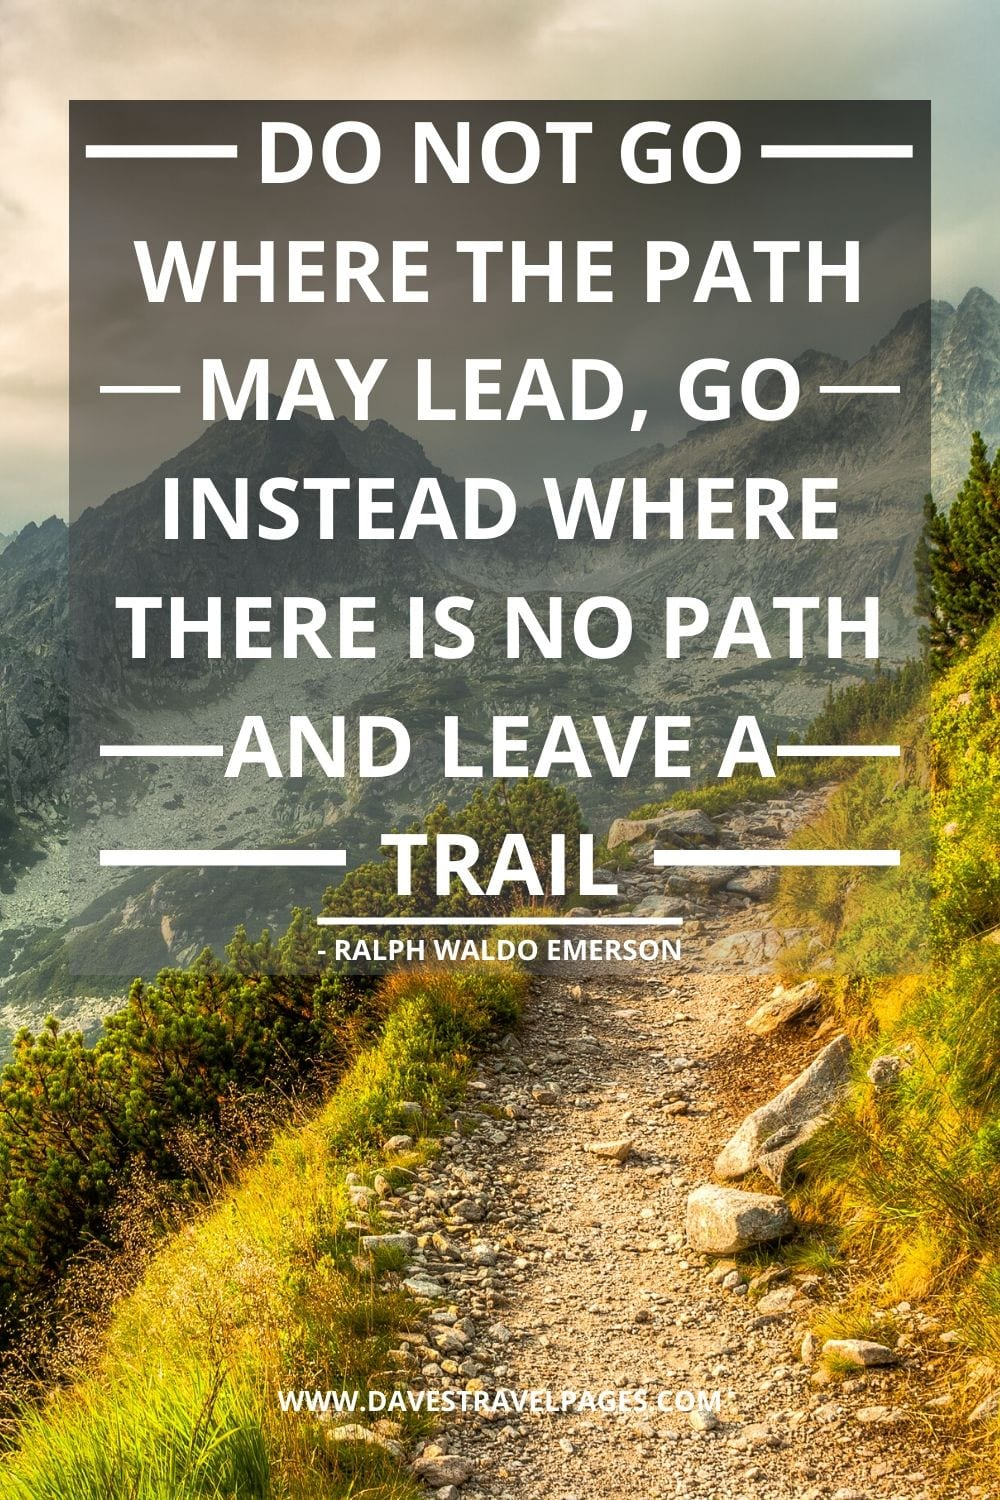 Inspirational Quotes: Do not go where the path may lead, go instead where there is no path and leave a trail - Ralph Waldo Emerson